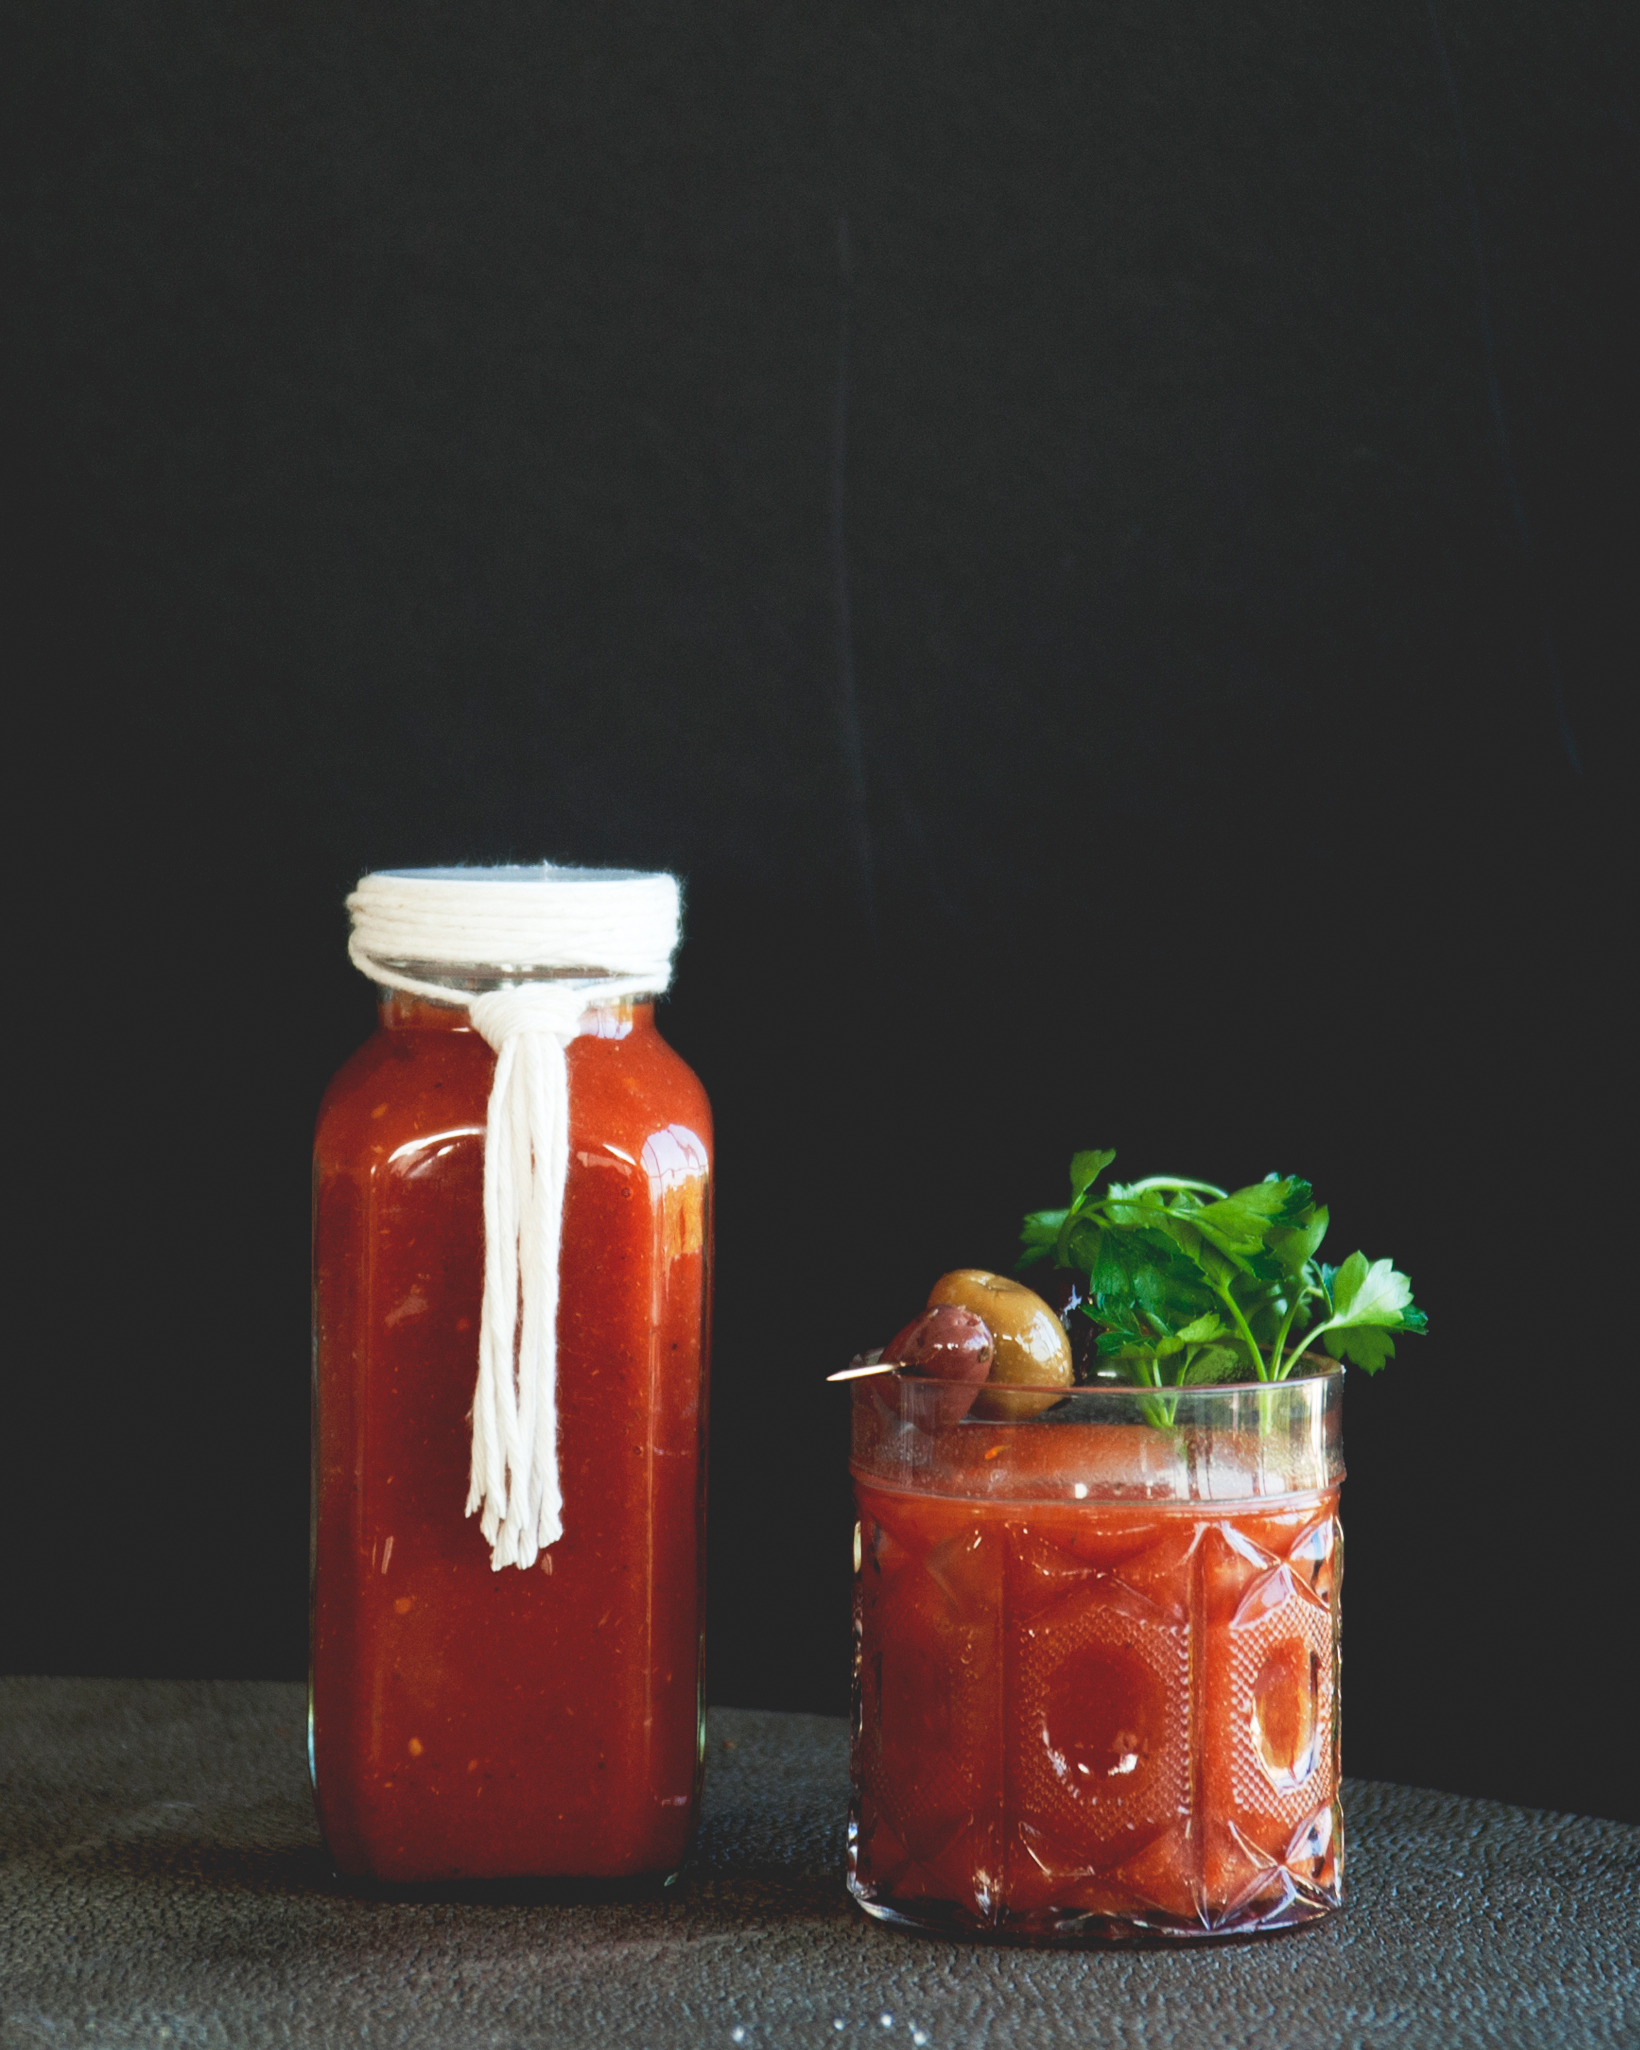 claire-thomas-valentines-day-diy-bloody-mary-mix-0215.jpg